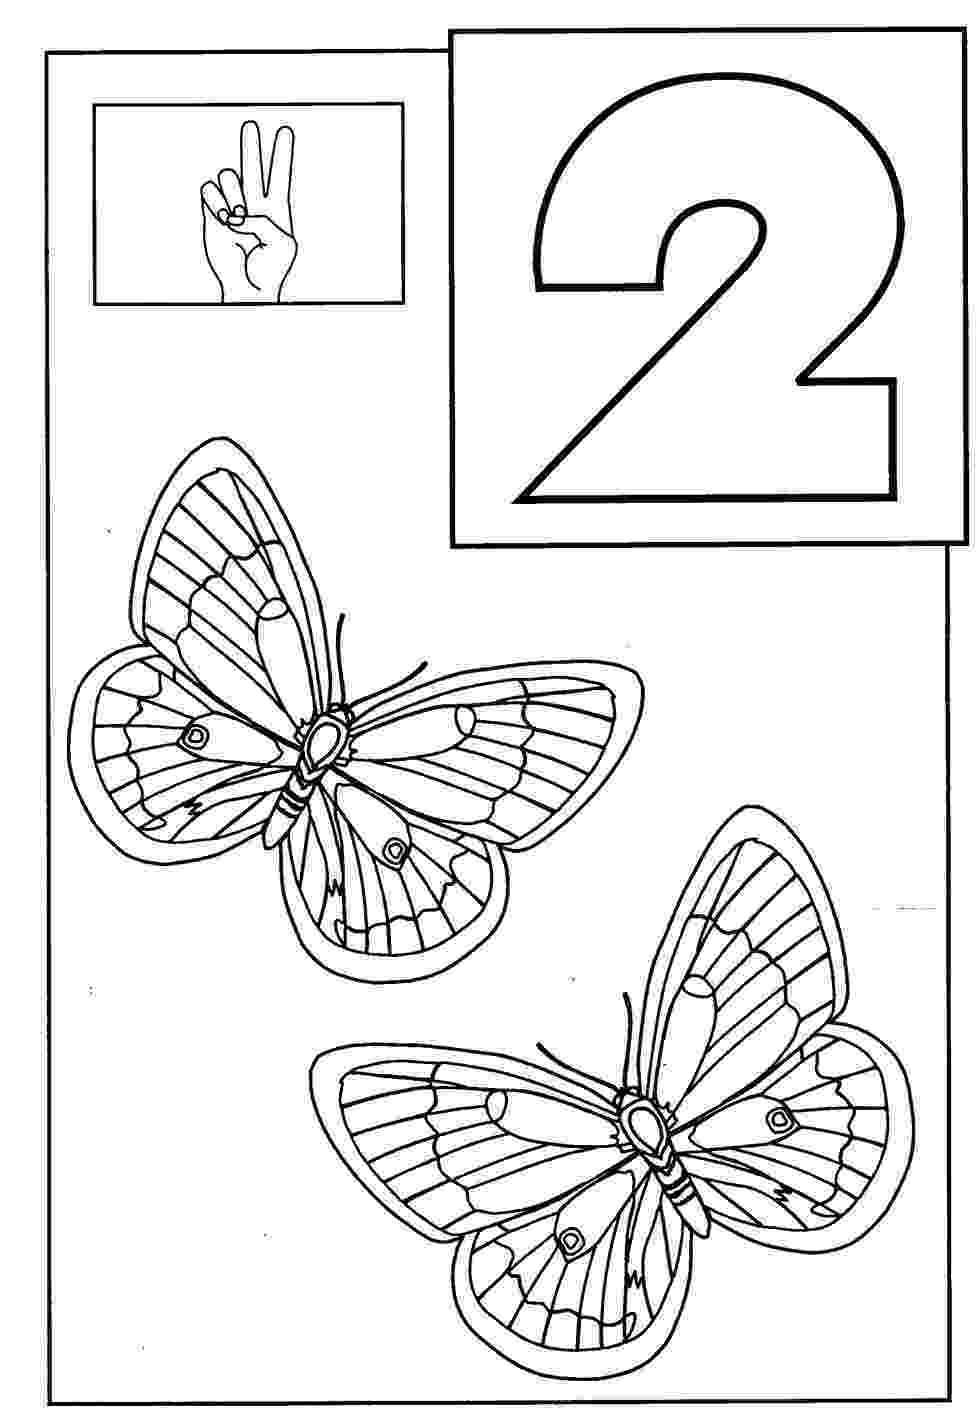 number 2 coloring pages for toddlers kindergarten worksheets coloring worksheets maths 1 10 pages toddlers 2 for number coloring